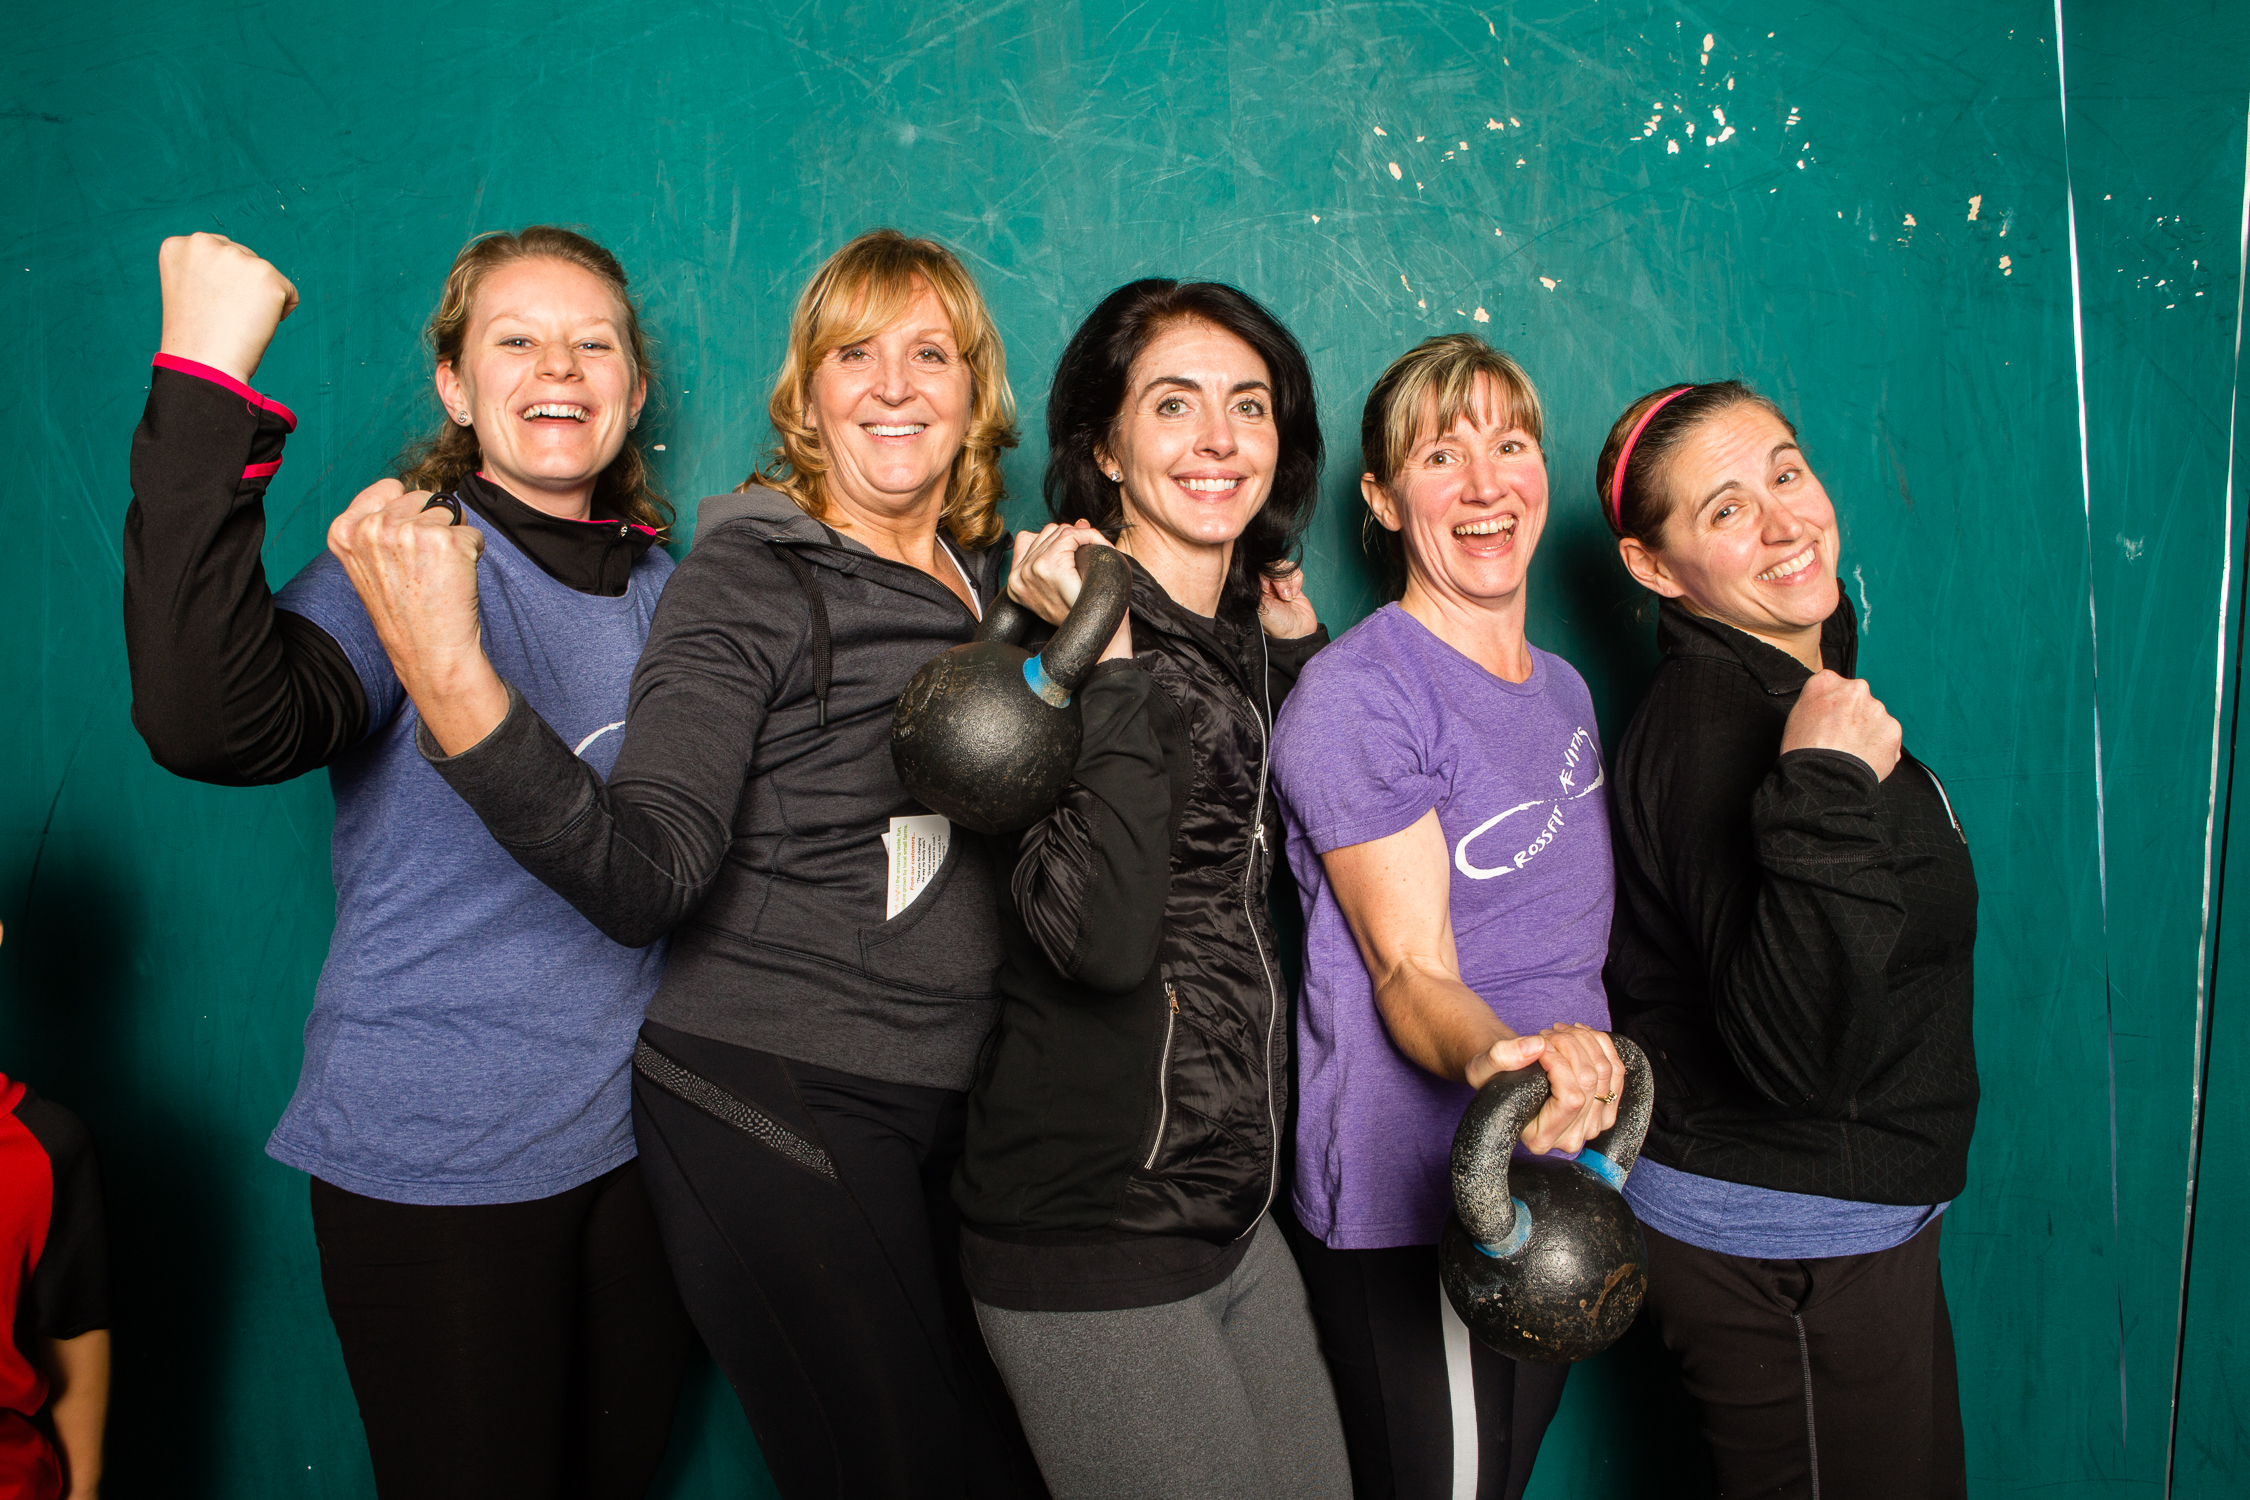 Mary and friends at the CrossFit Aevitas 1 Year Anniversary party in 2014. Mary is second from the left.